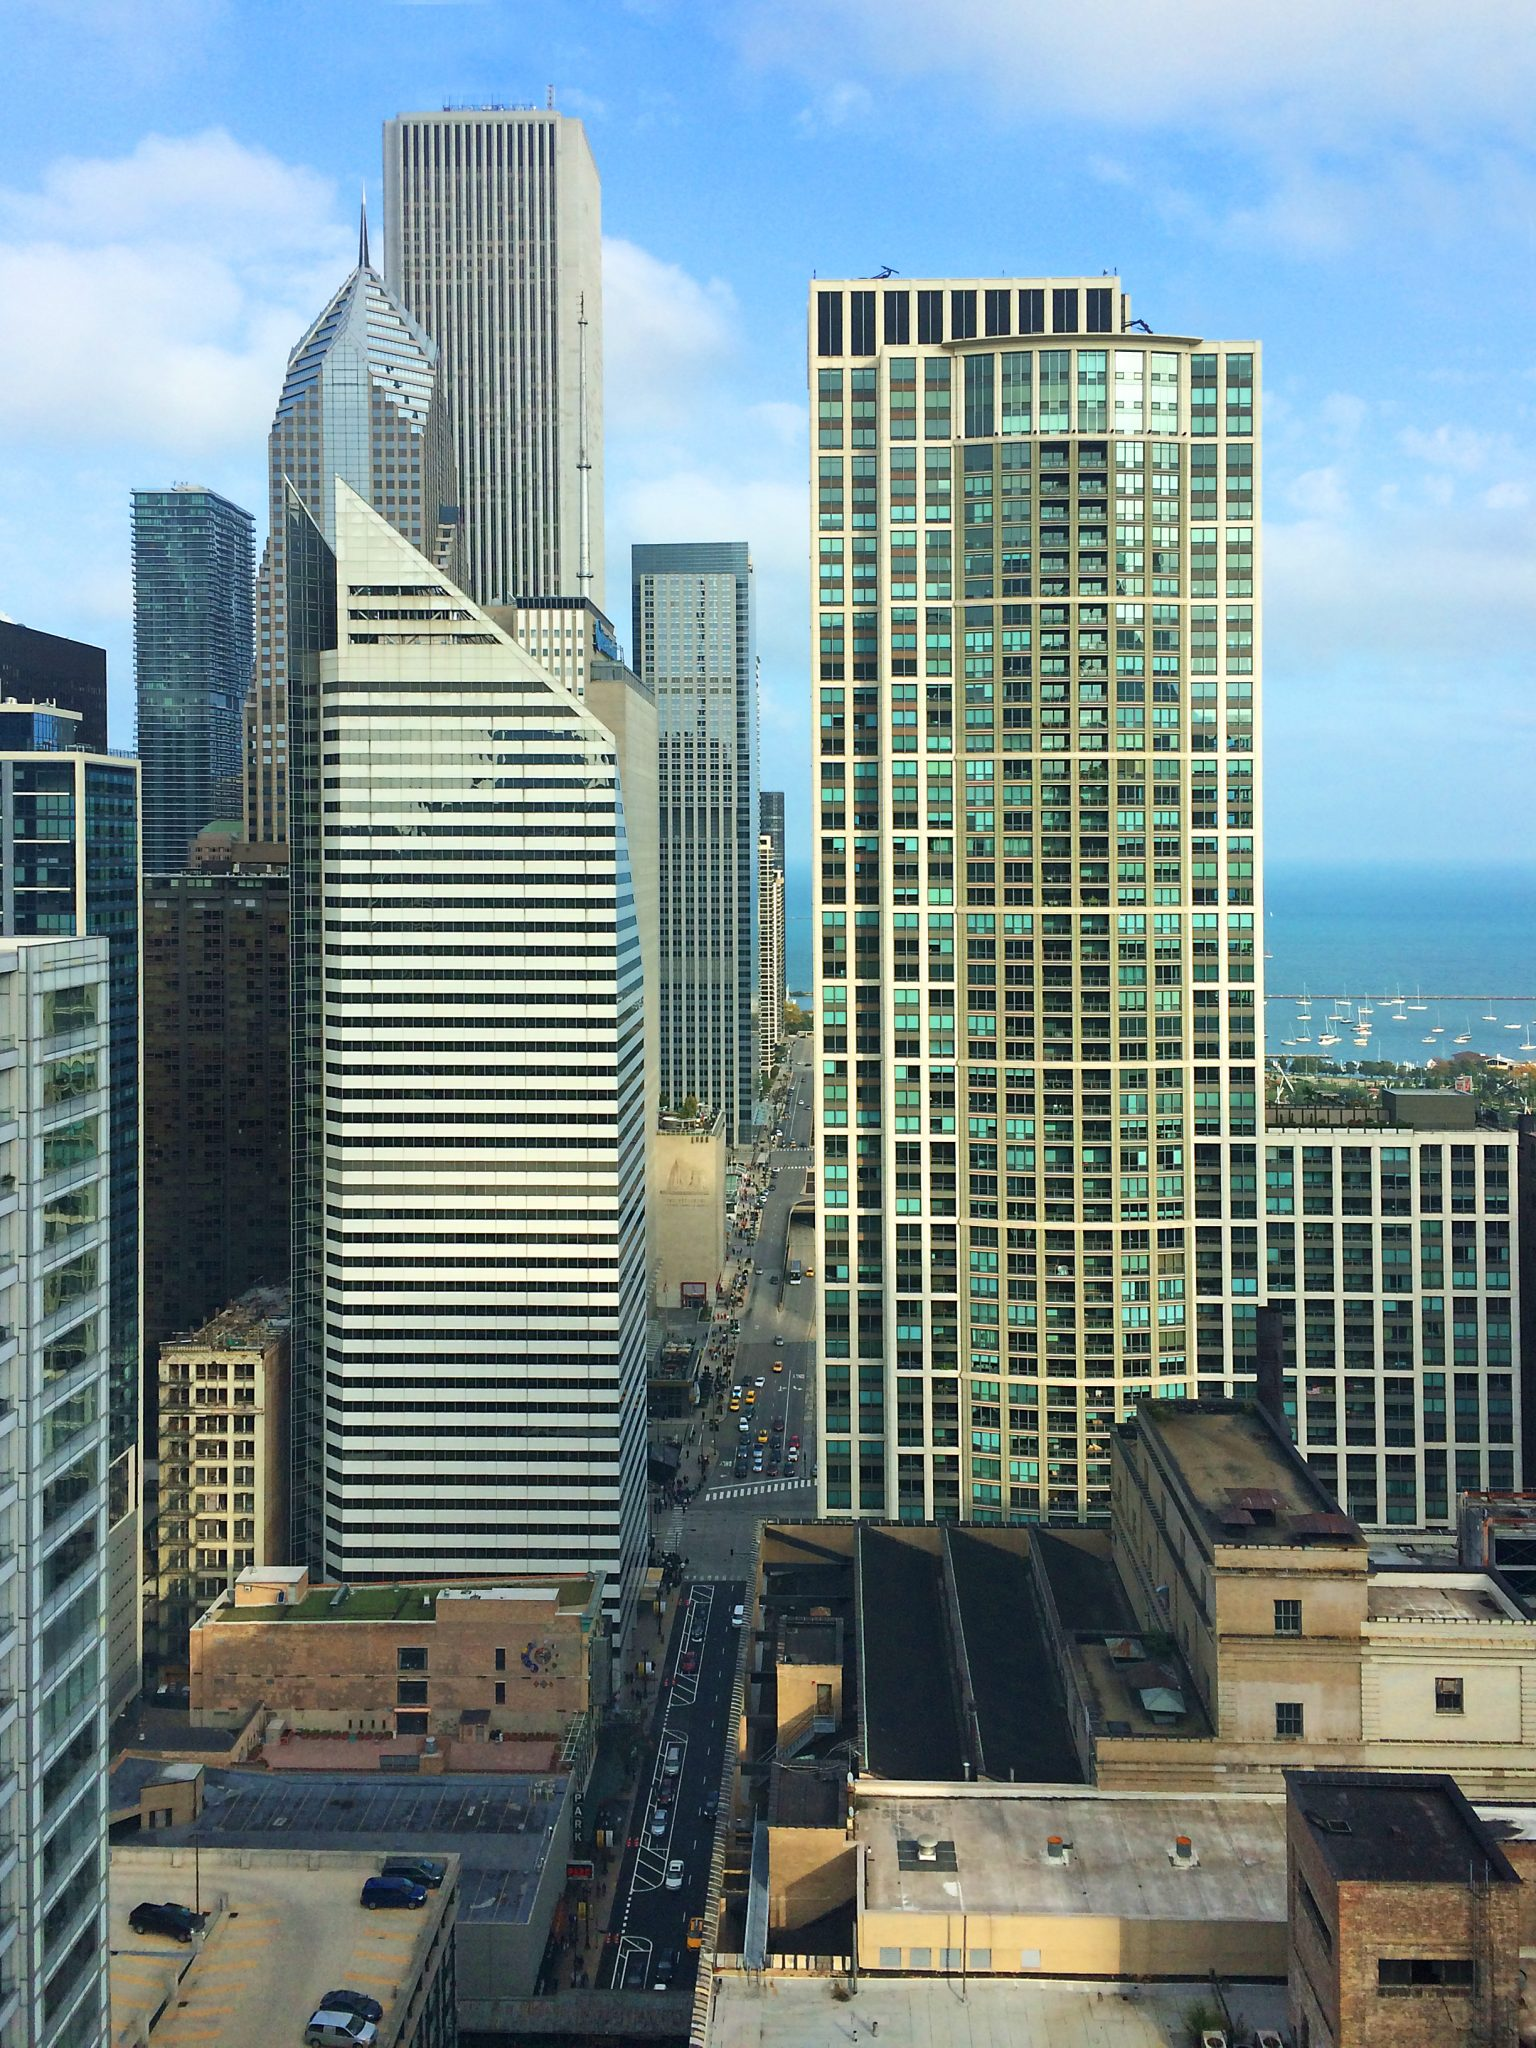 row of Chicago office buildings from midway up with Lake Michigan in background